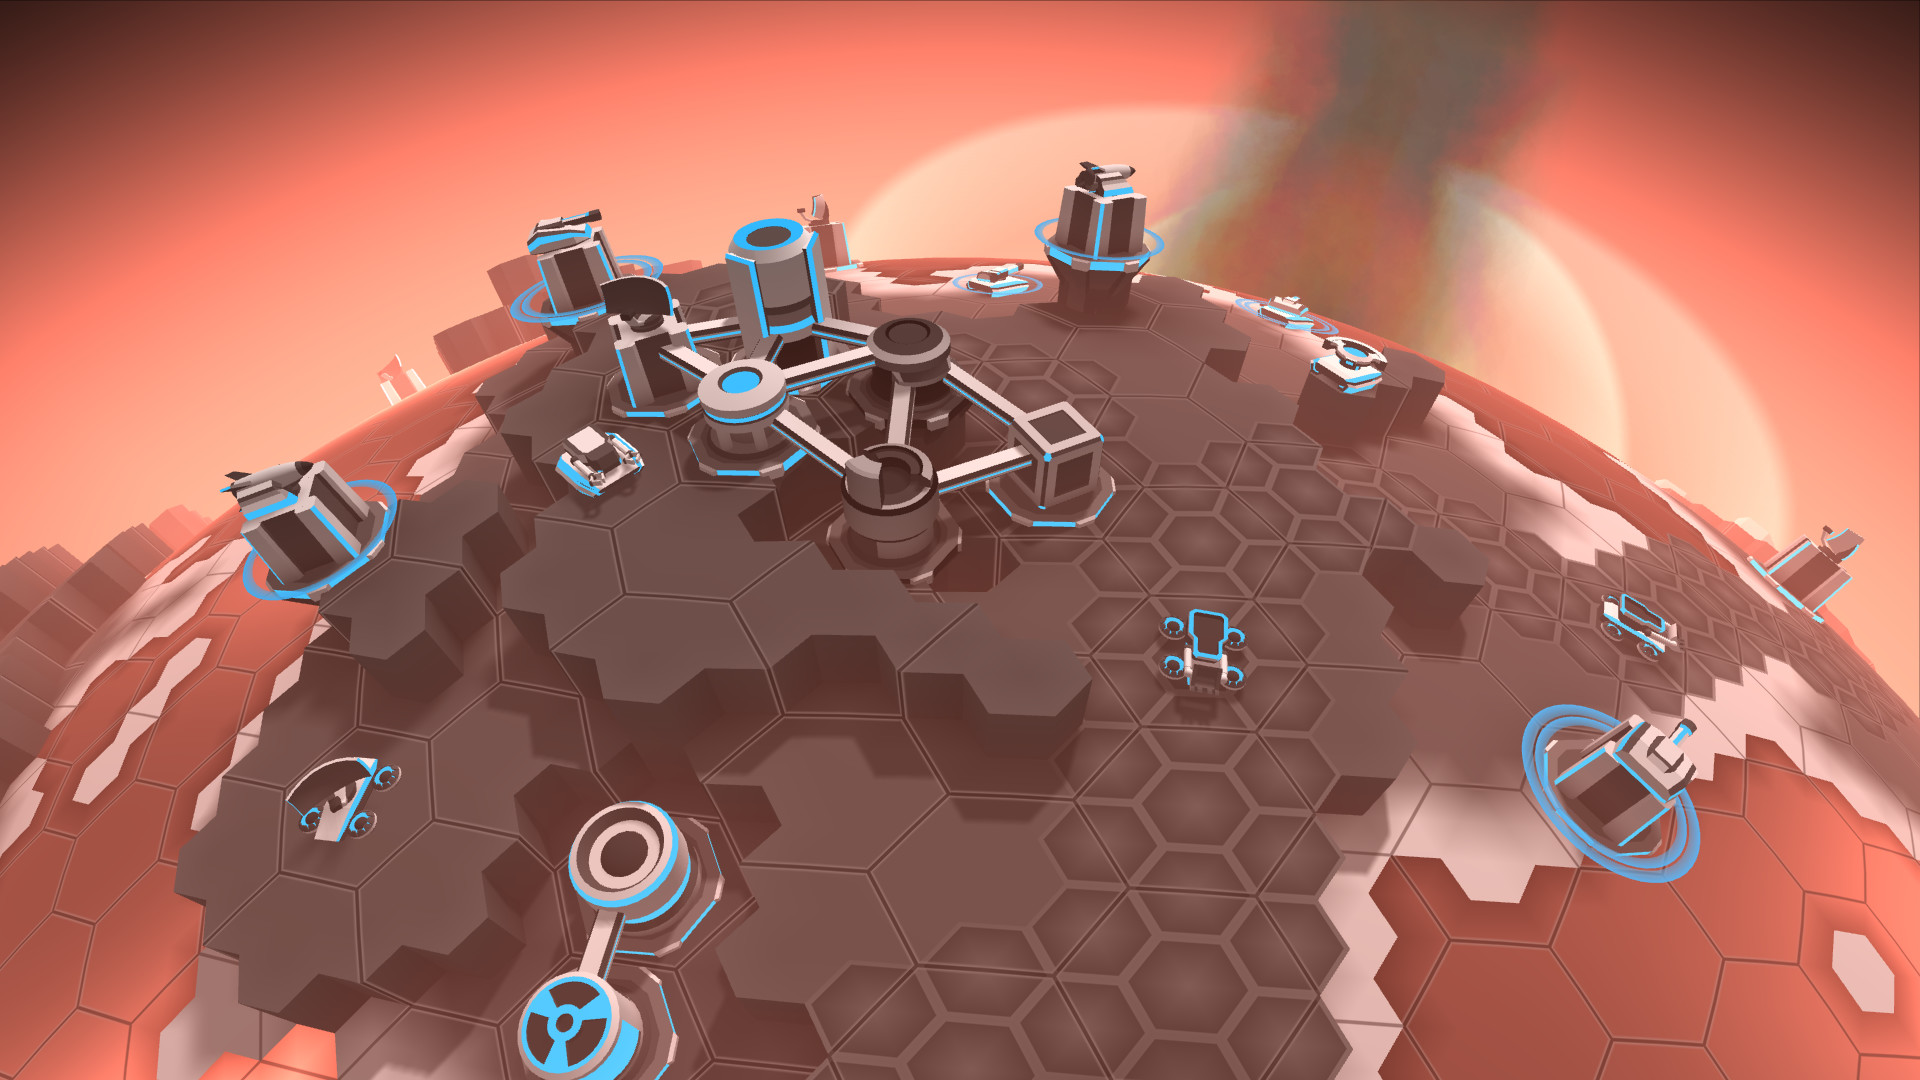 What's On Steam - Hexaverse